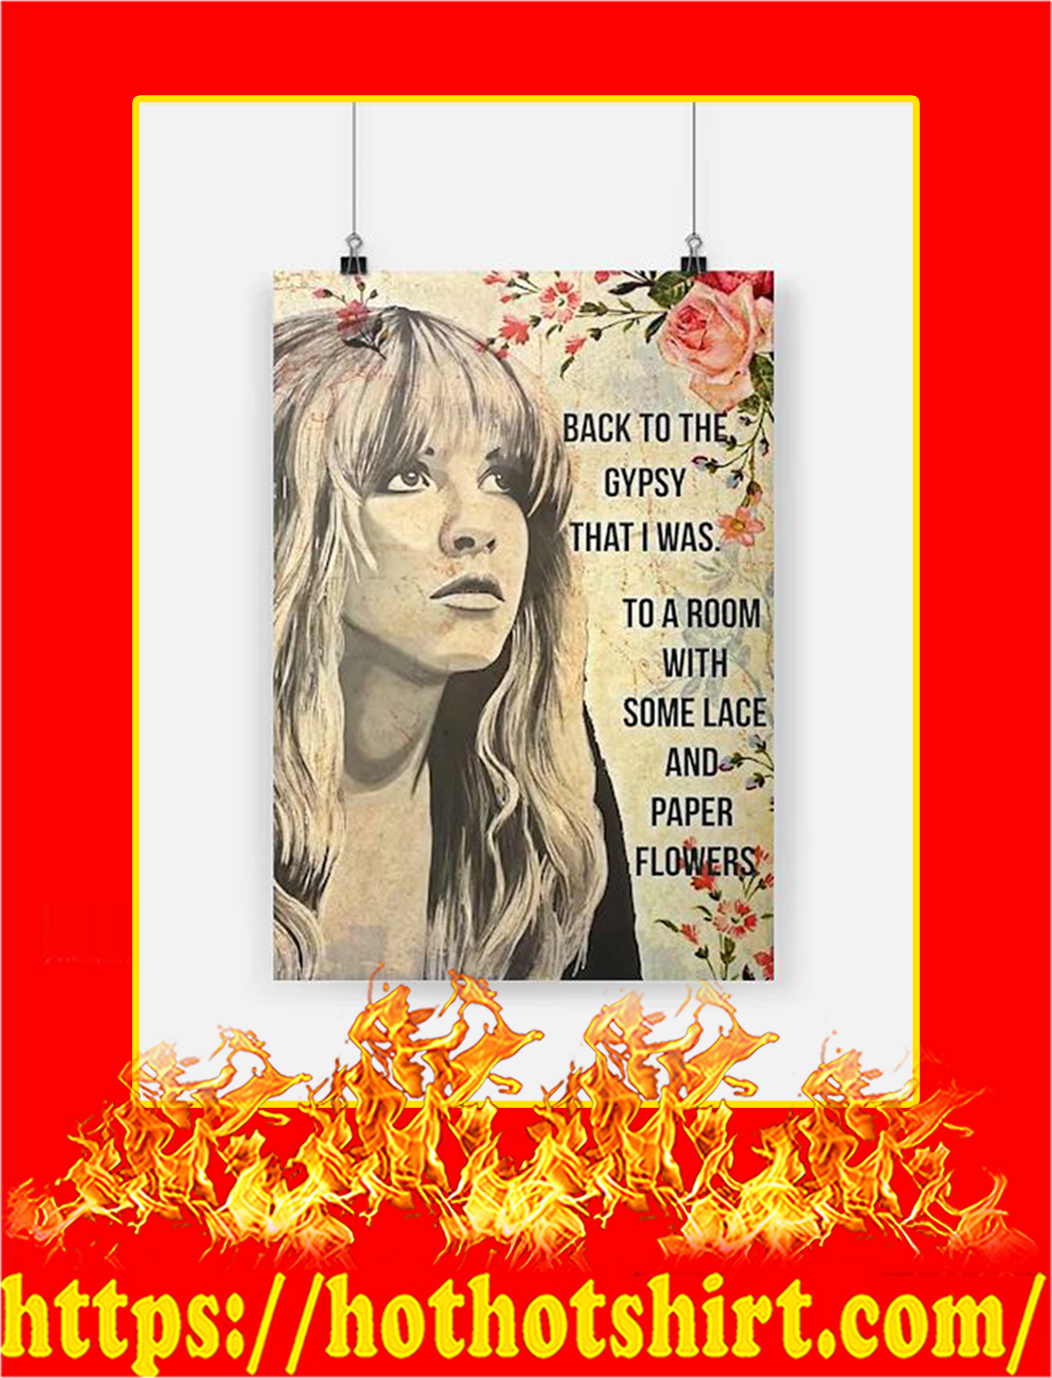 Stevie Nicks Back To The Gypsy That I Was To A Room With Some Lace And Paper Flowers Poster - A2